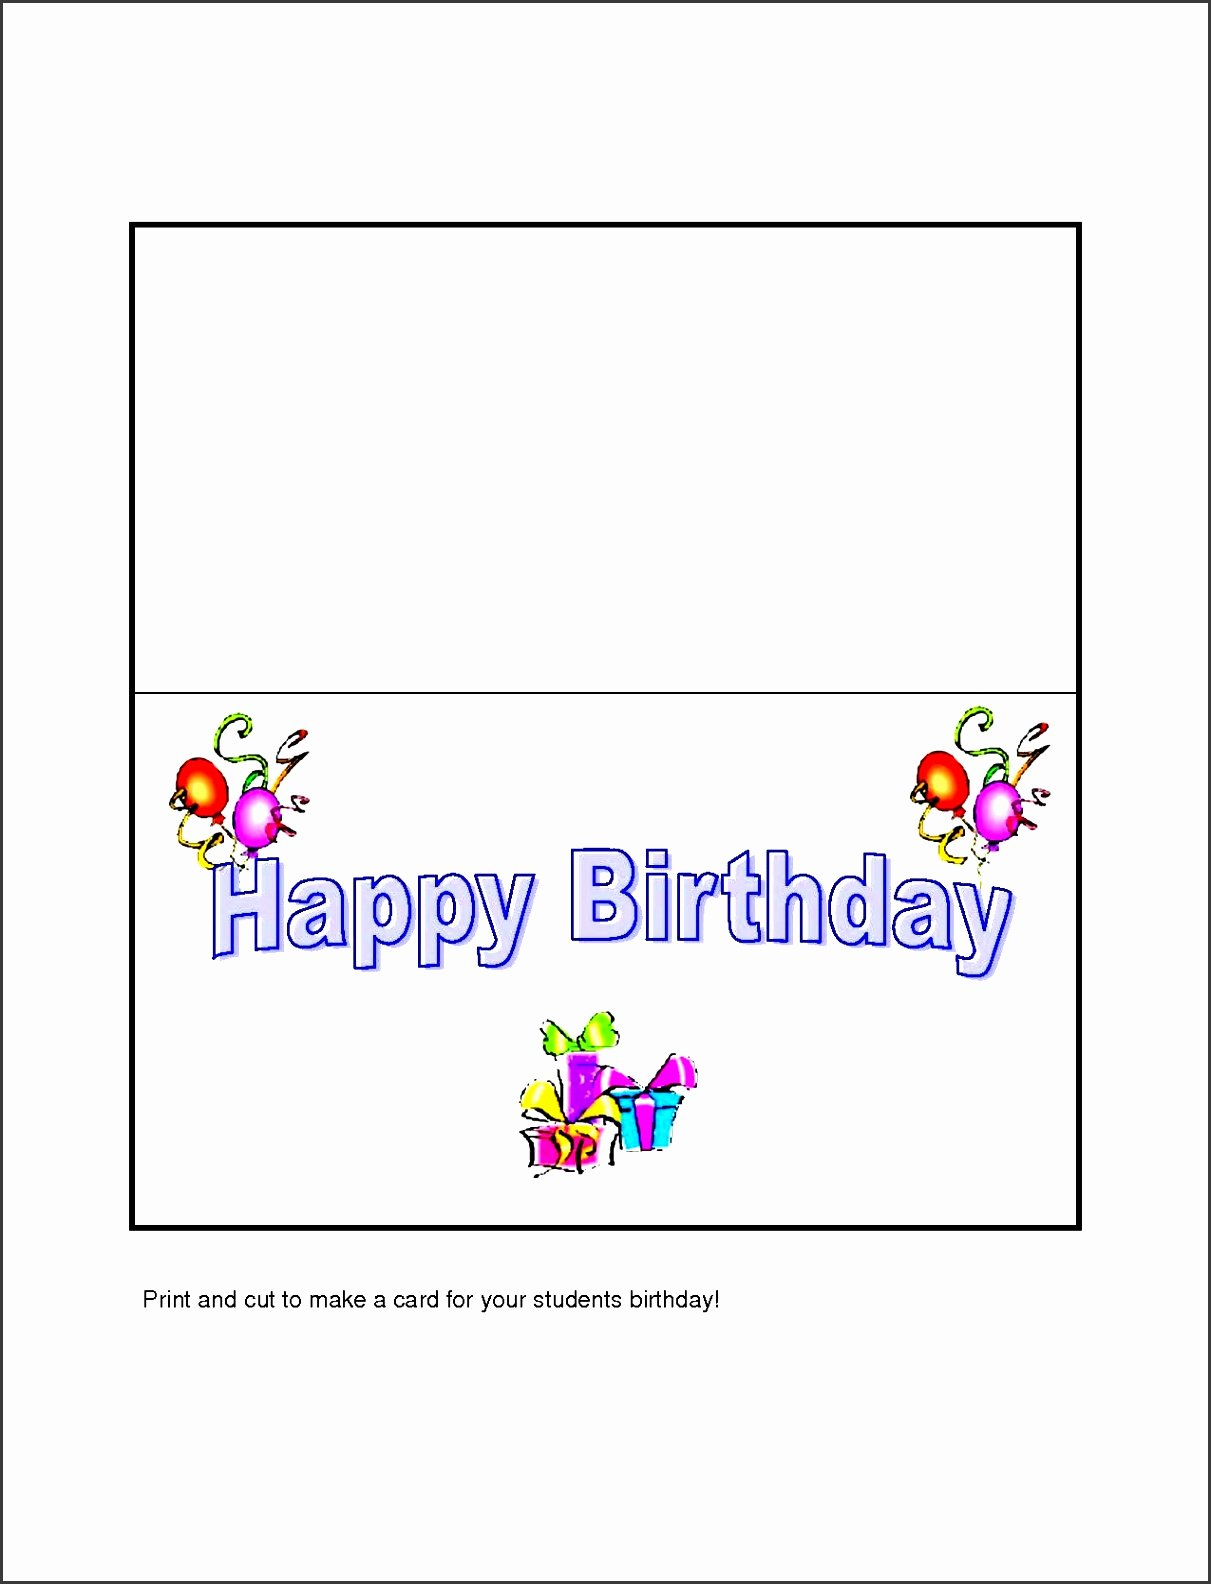 Microsoft Word Birthday Card Template Elegant 10 Free Microsoft Word Greeting Card Templates